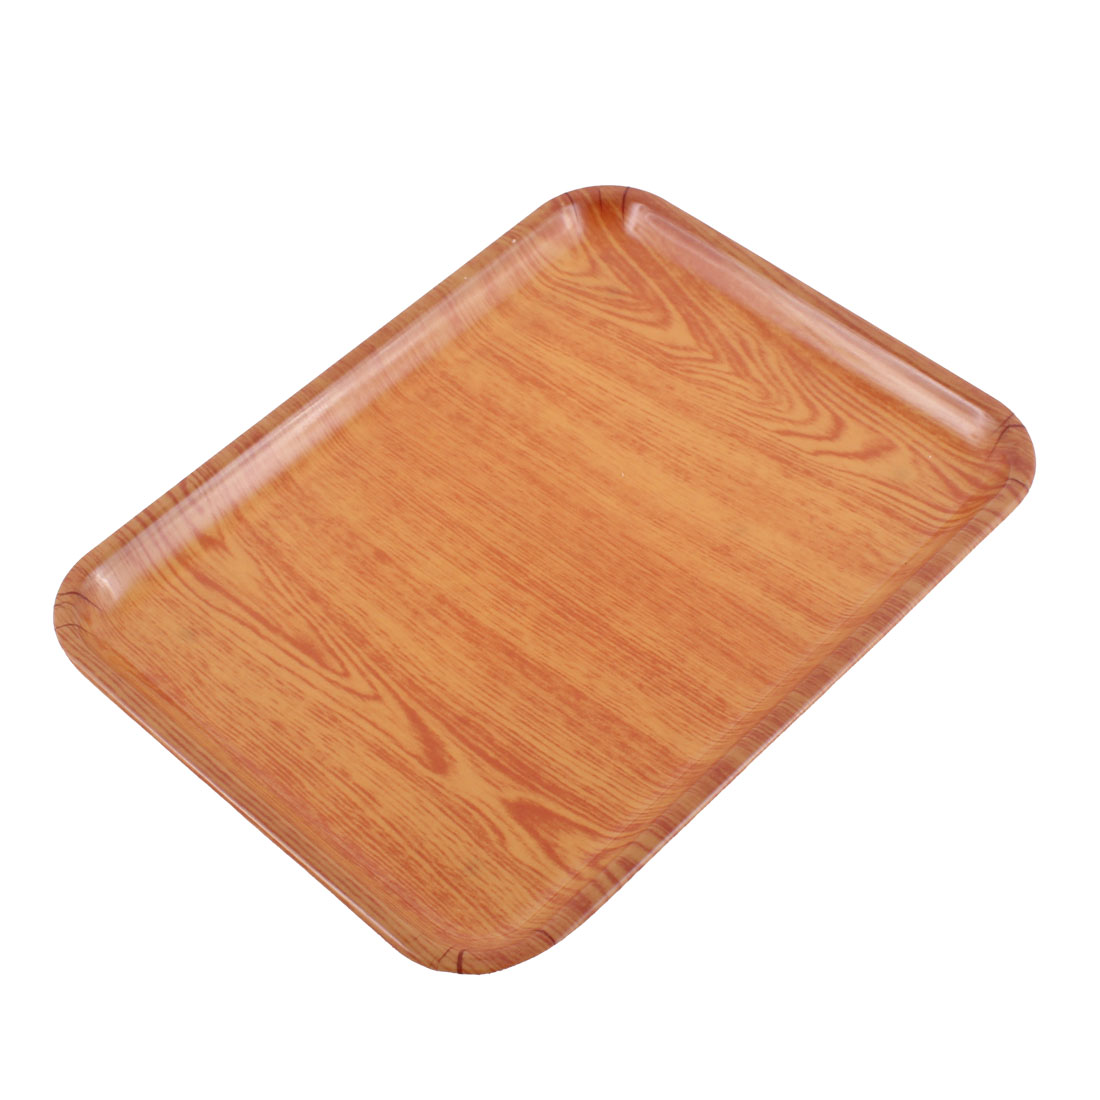 Restaurant Plastic Wood Grain Pattern Rectangle Shape Food Drinks Serving Tray